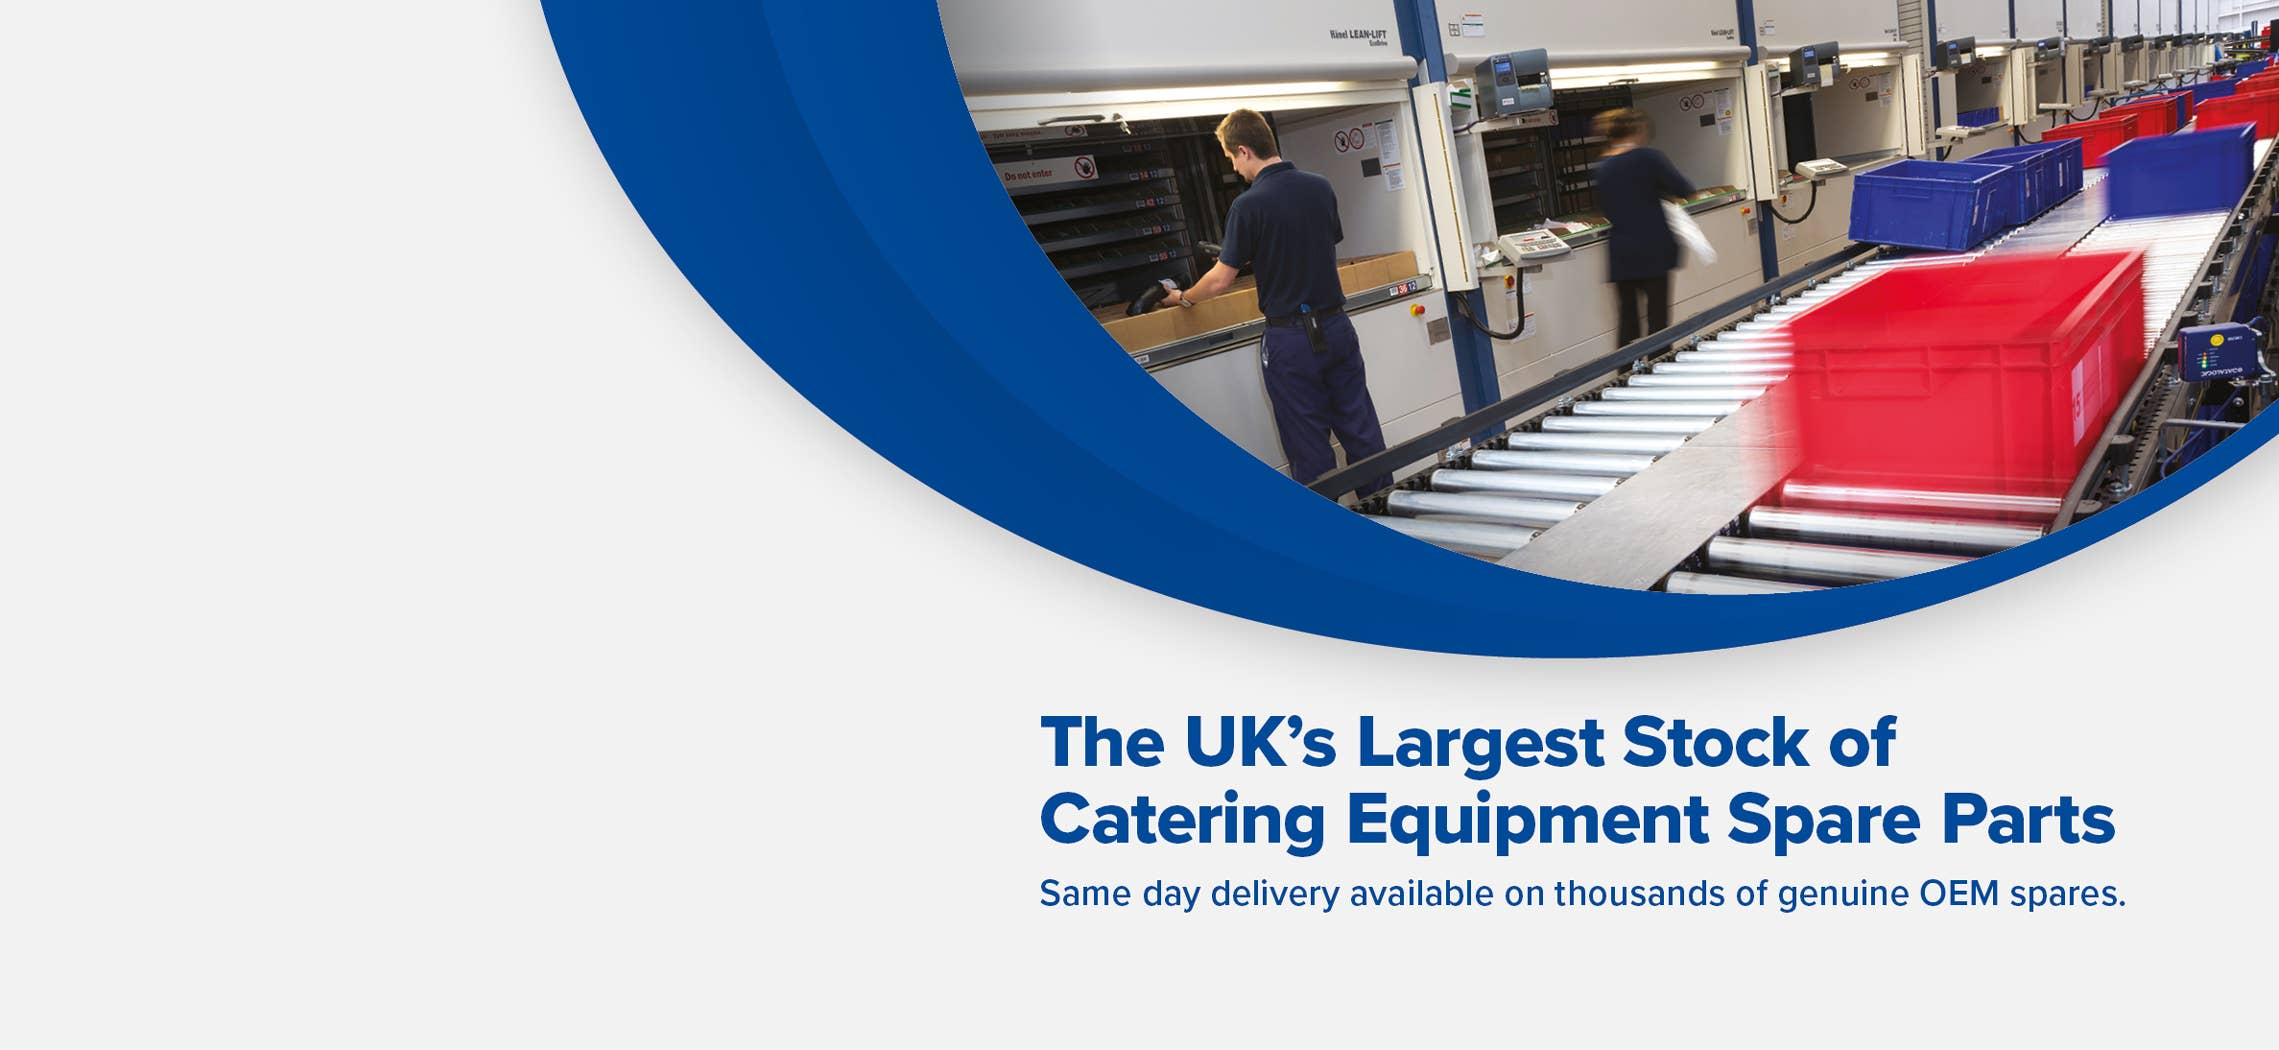 The UK's Largest Stock of OEM Catering Equipment Parts